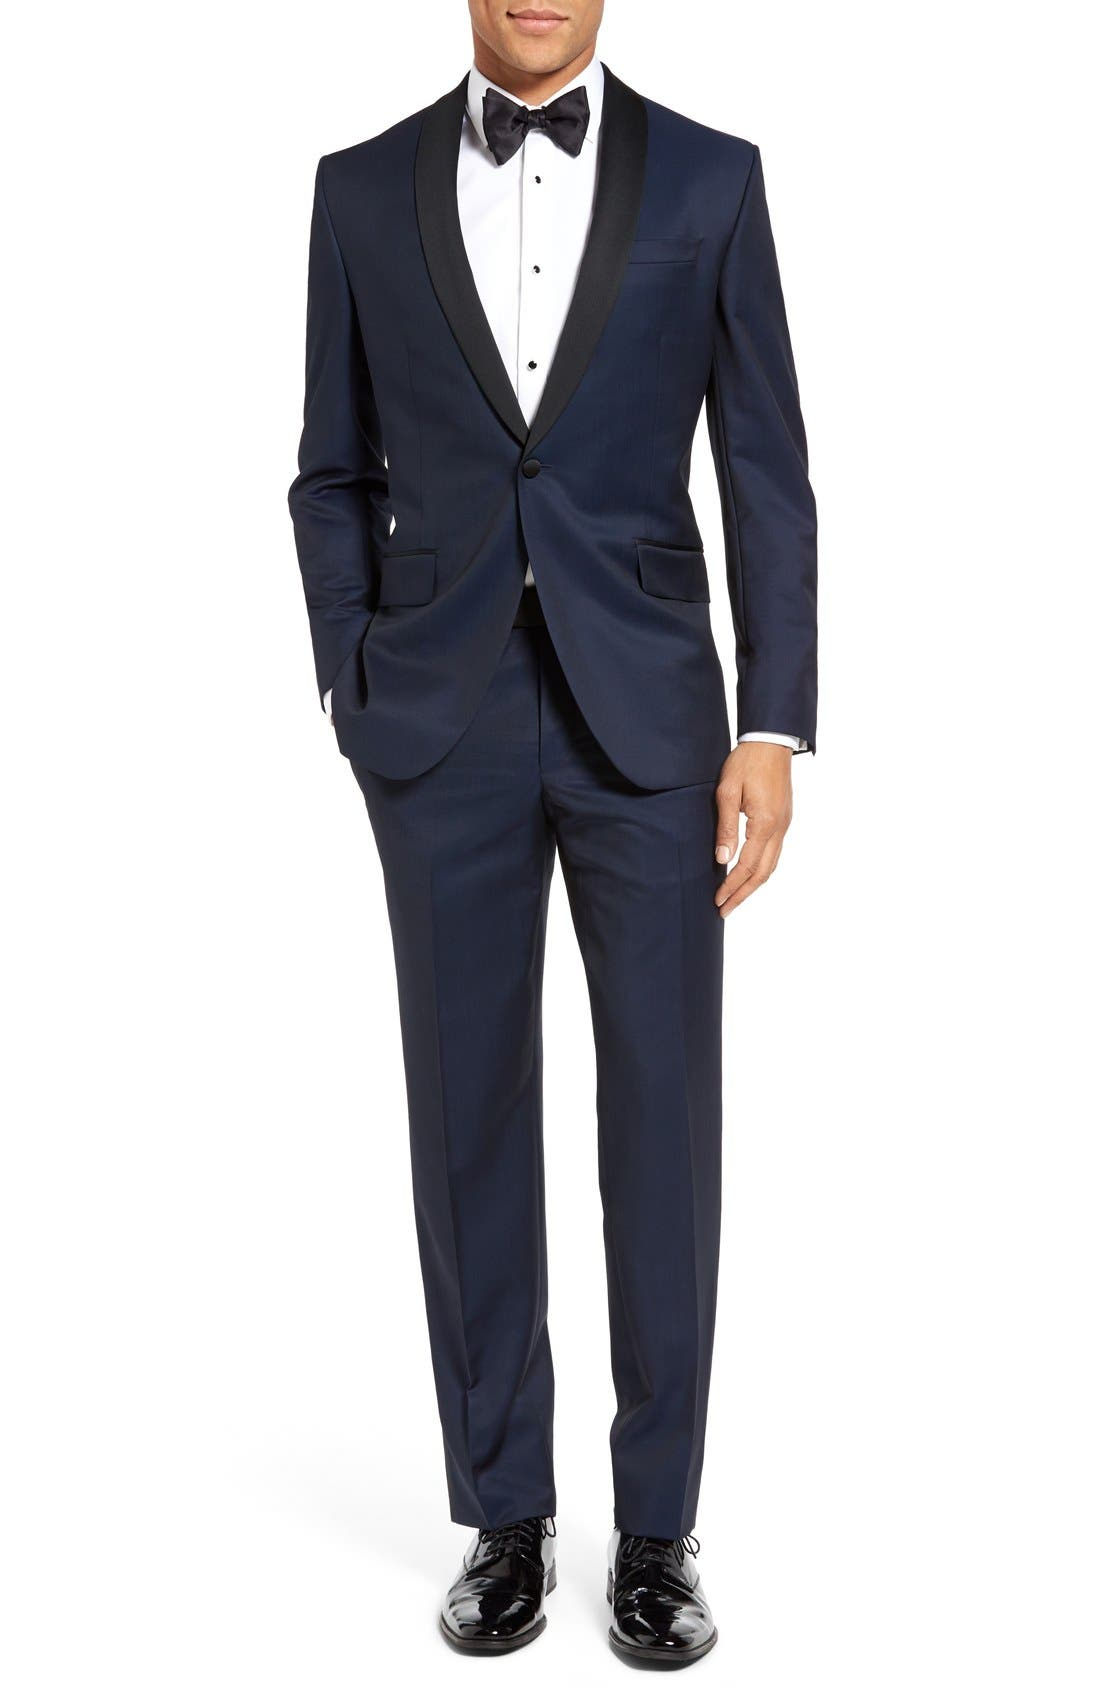 Ted Baker London 'Josh' Trim Fit Navy Shawl Lapel Tuxedo